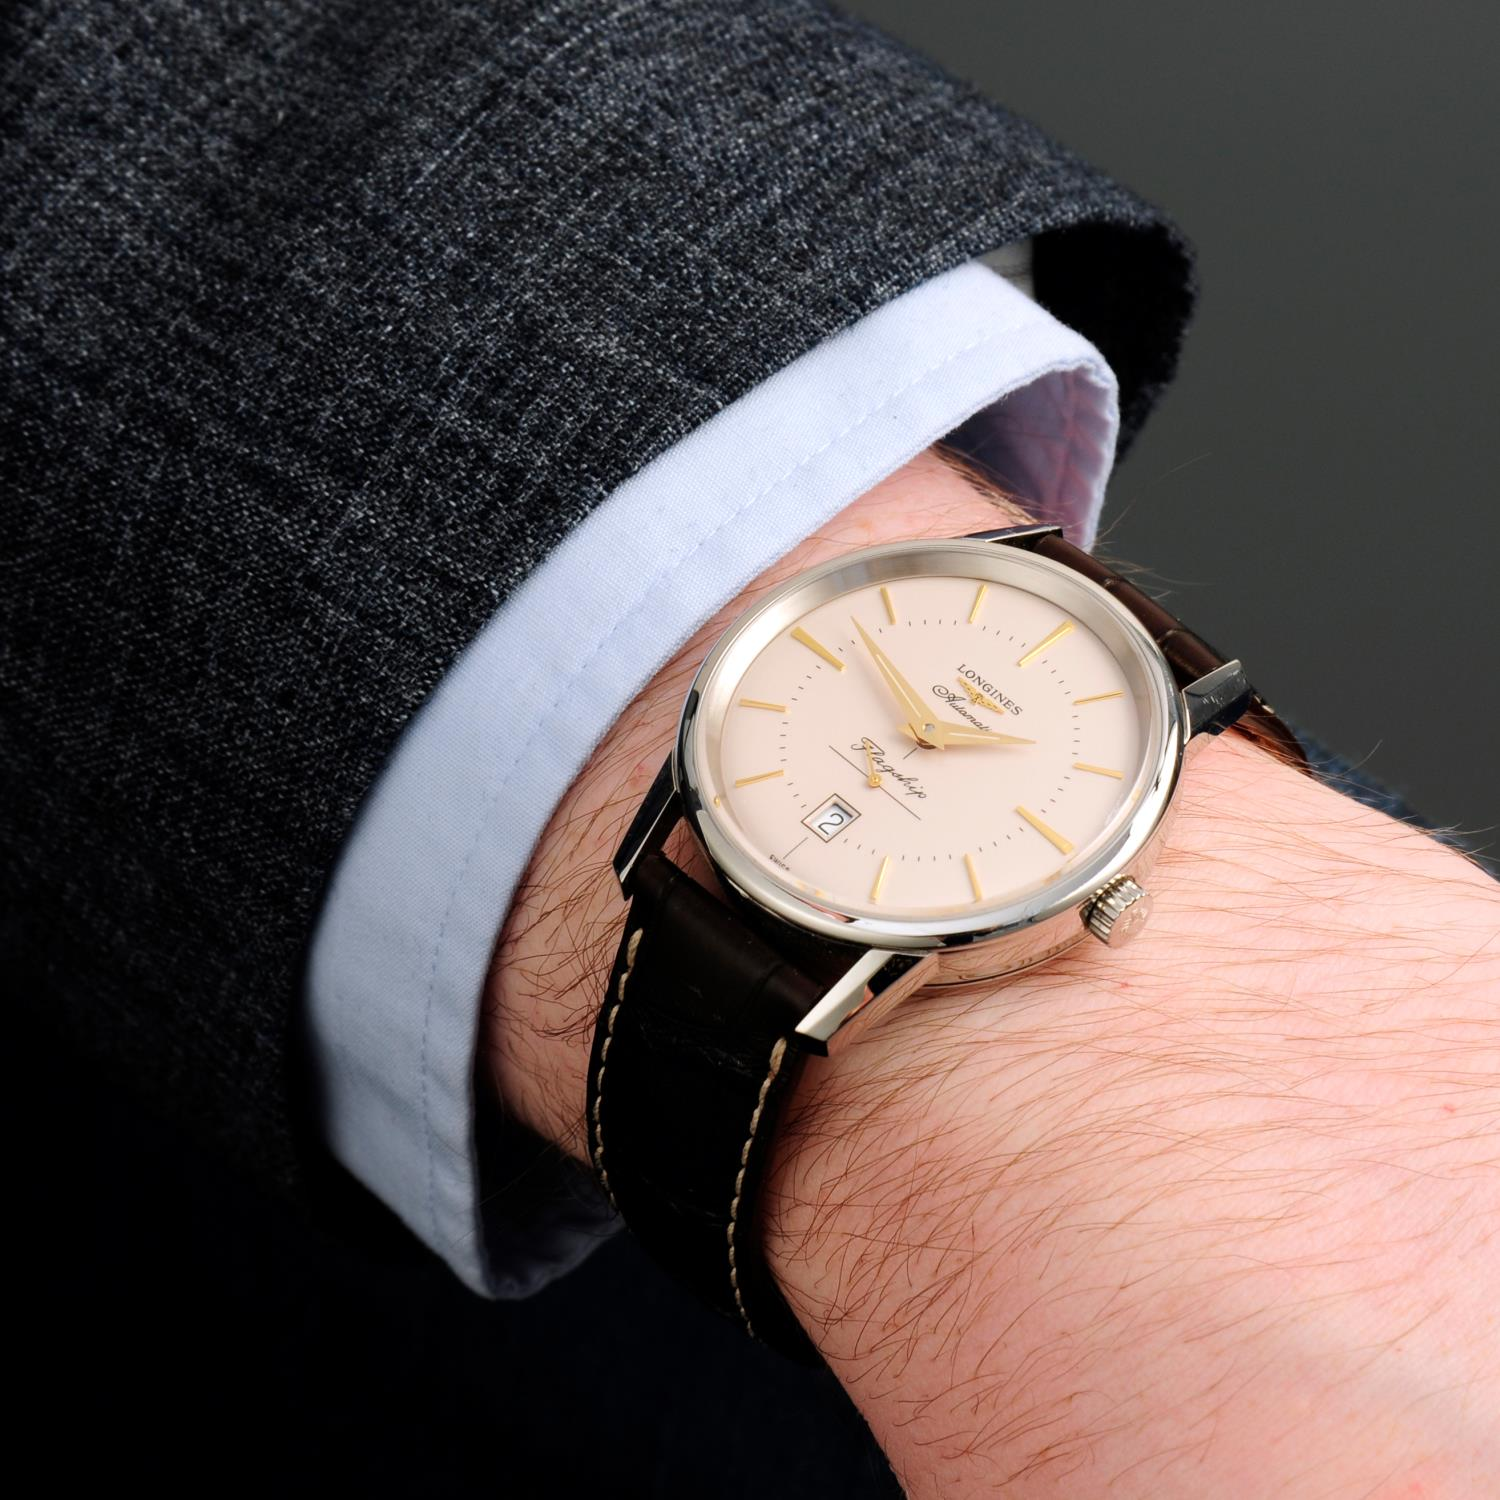 LONGINES - a Flagship wrist watch. - Image 3 of 6